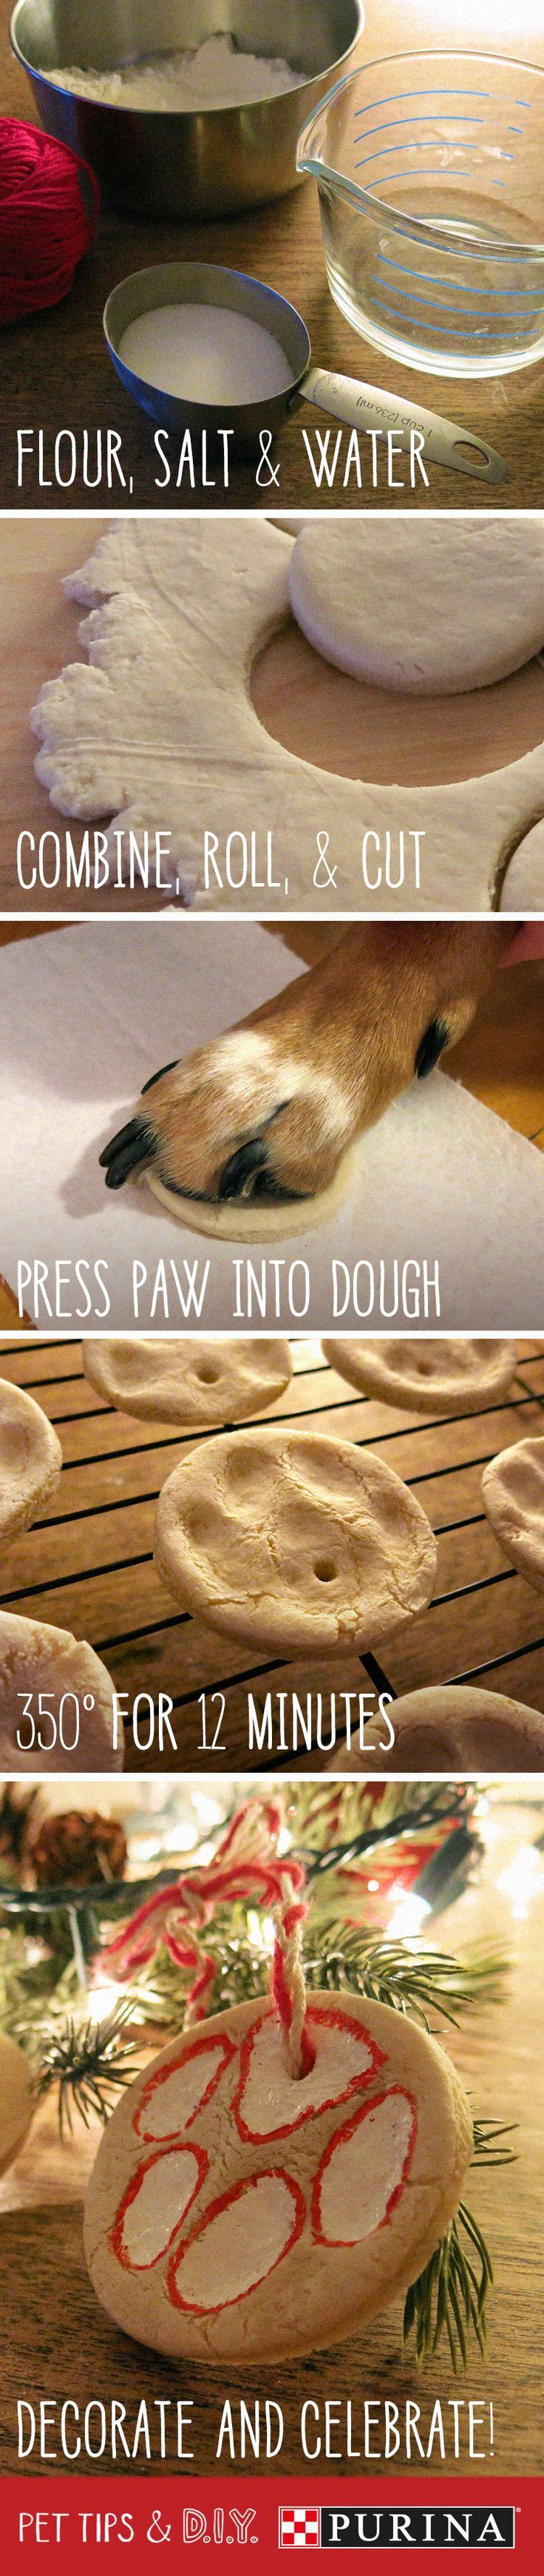 Make a DIY paw print ornament to celebrate the holiday season with your cat or…